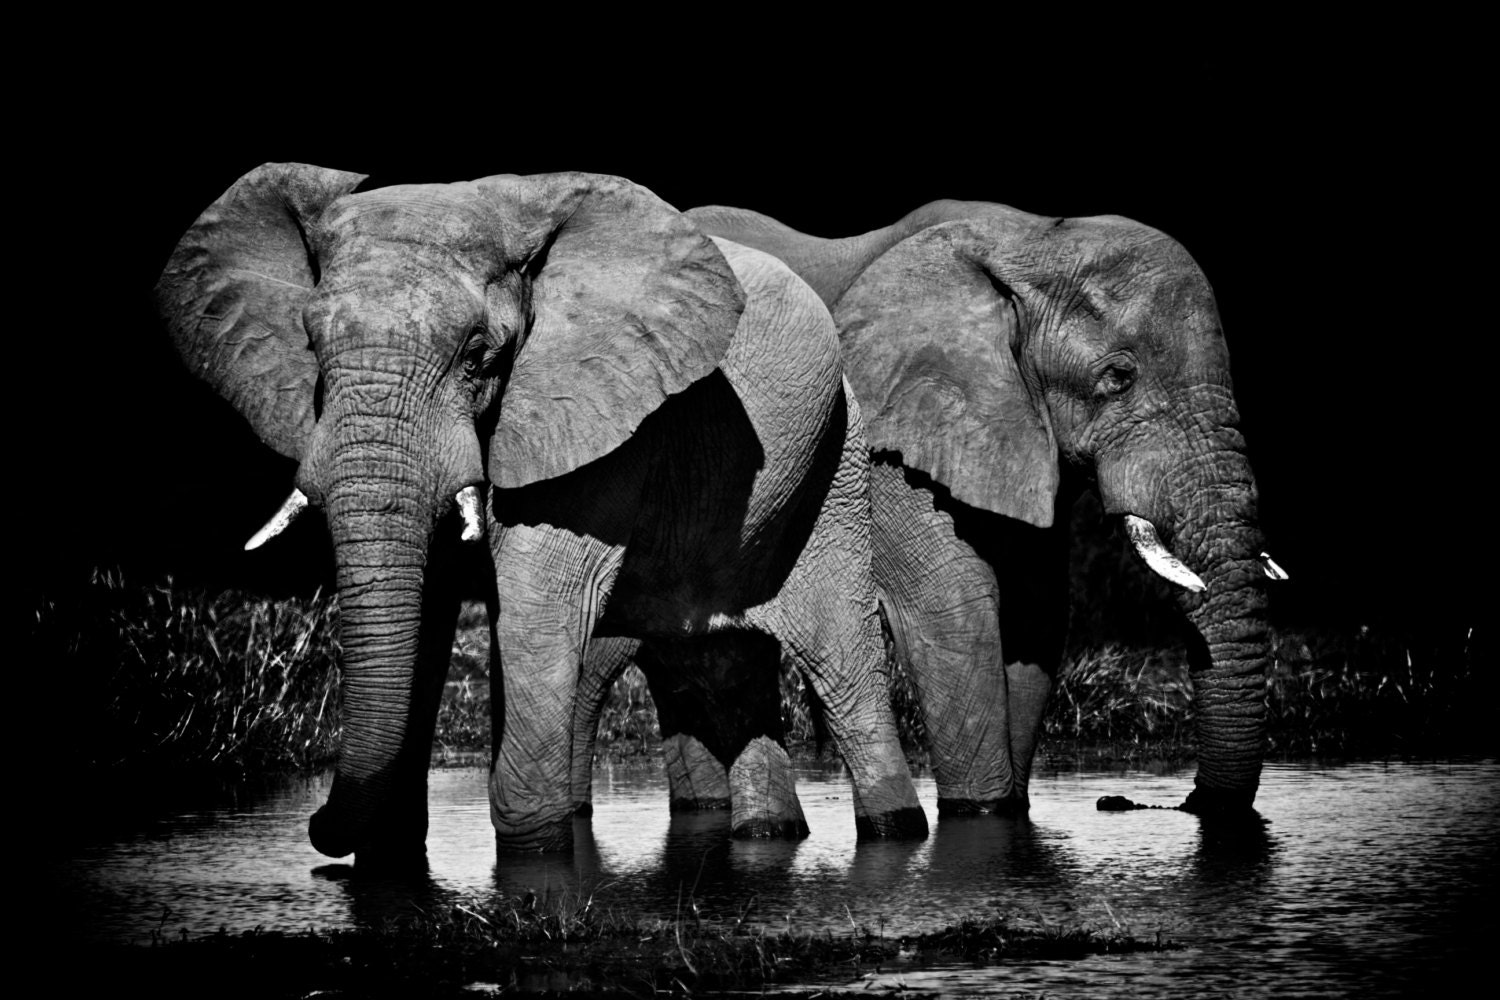 Elephants wildlife photography elephant decor african elephant African elephant home decor